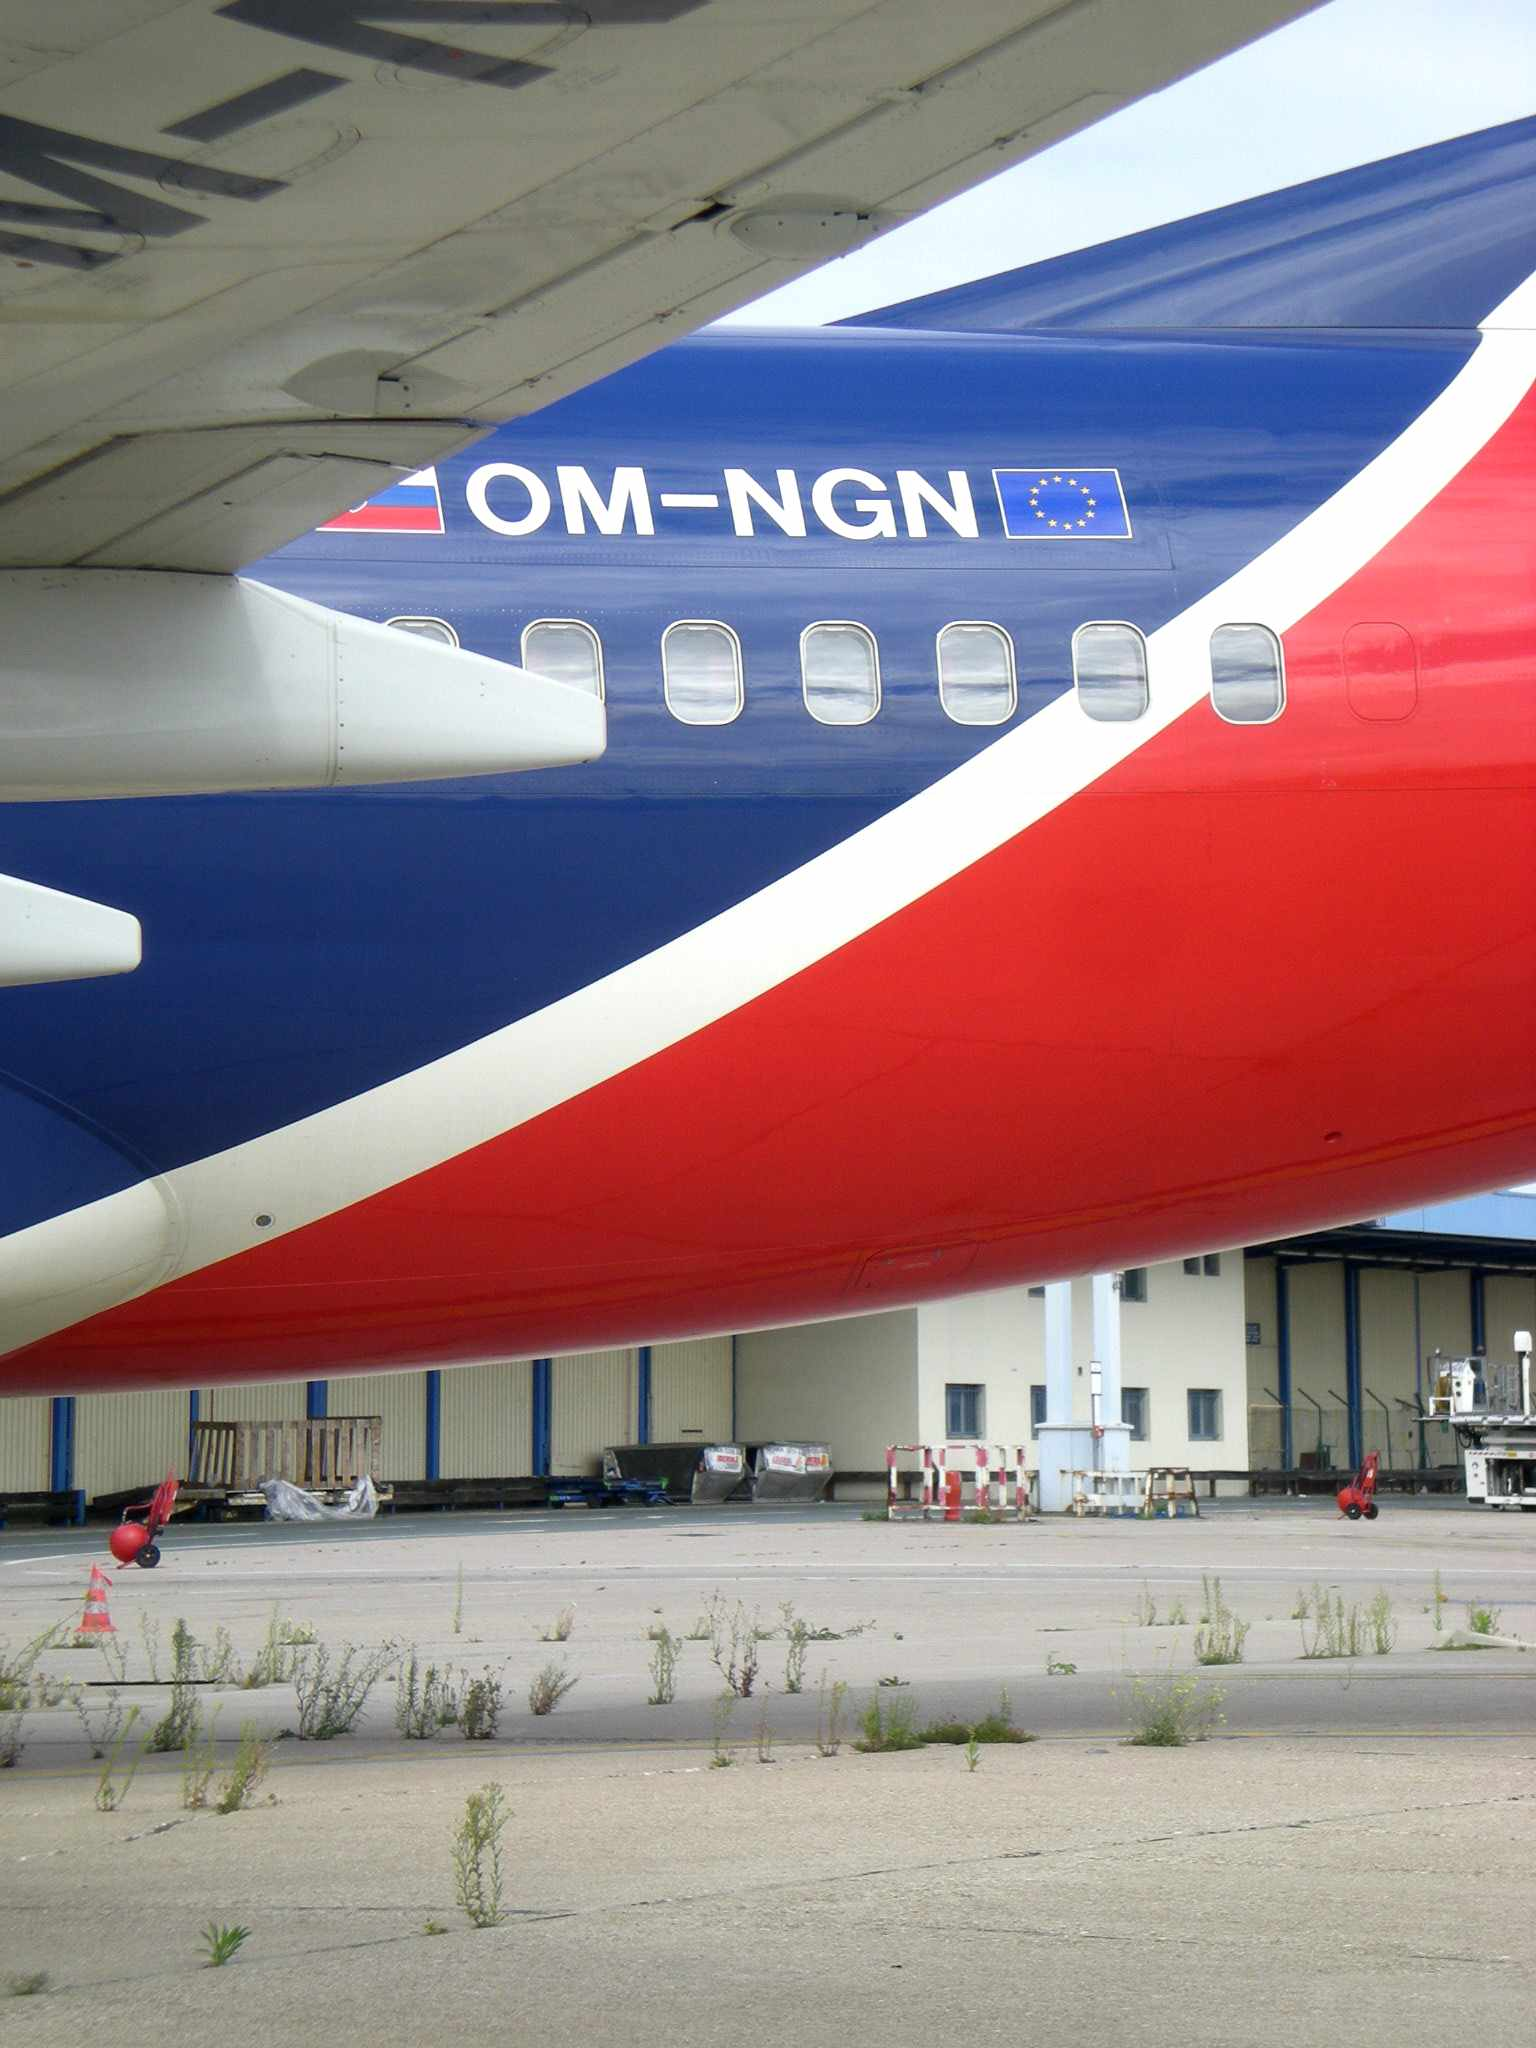 SkyEurope's Boeing 737-7GL OM-NGN (msn 34759) has been impounded at Paris (Orly) now for over 70 days (the weeds are now growing under the aircraft!).  Copyright Photo: Pepscl.